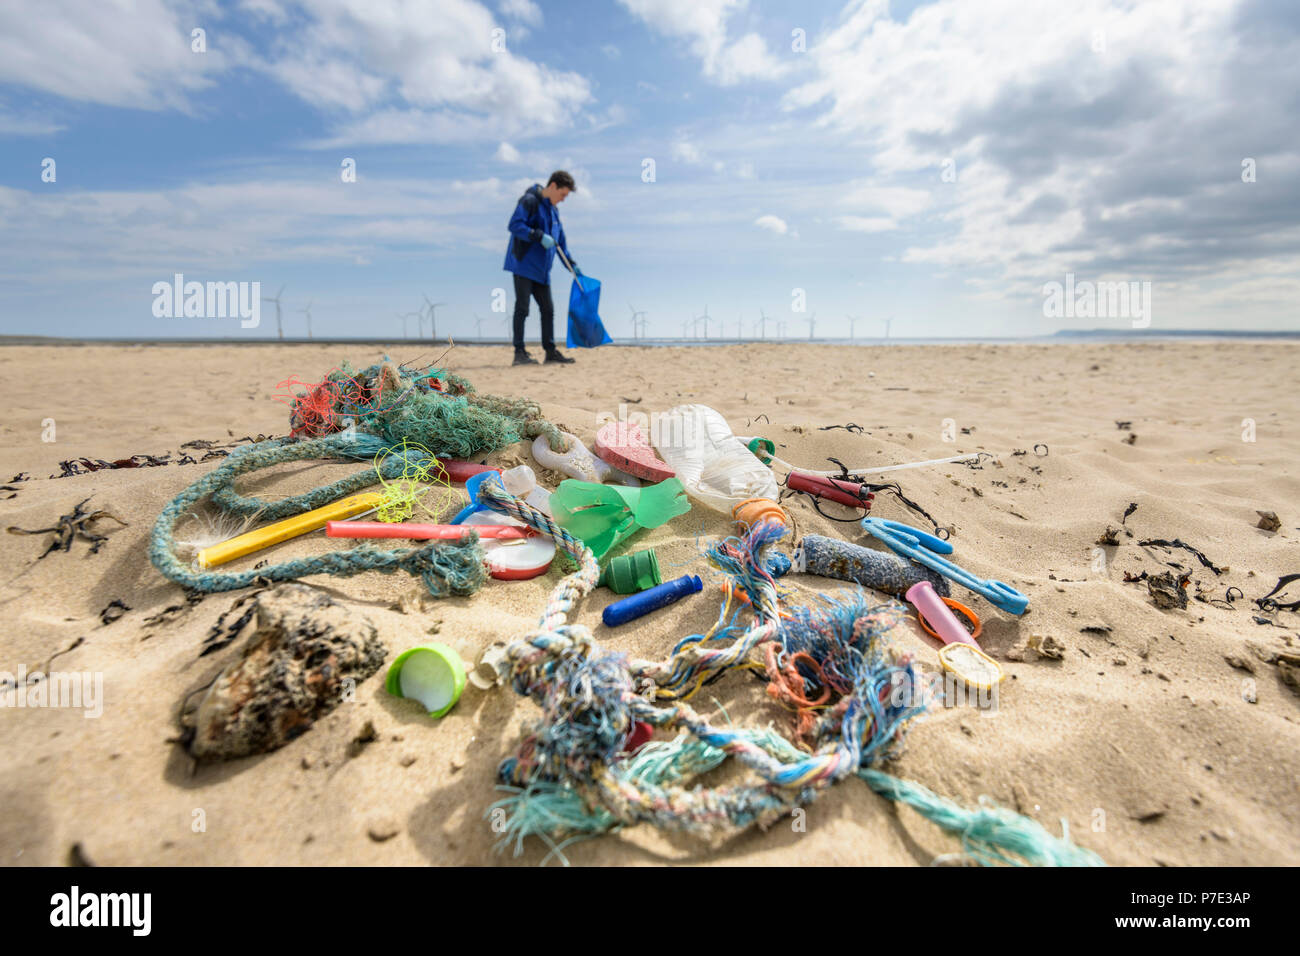 Man picking up plastic pollution collected on beach, North East England, UK - Stock Image